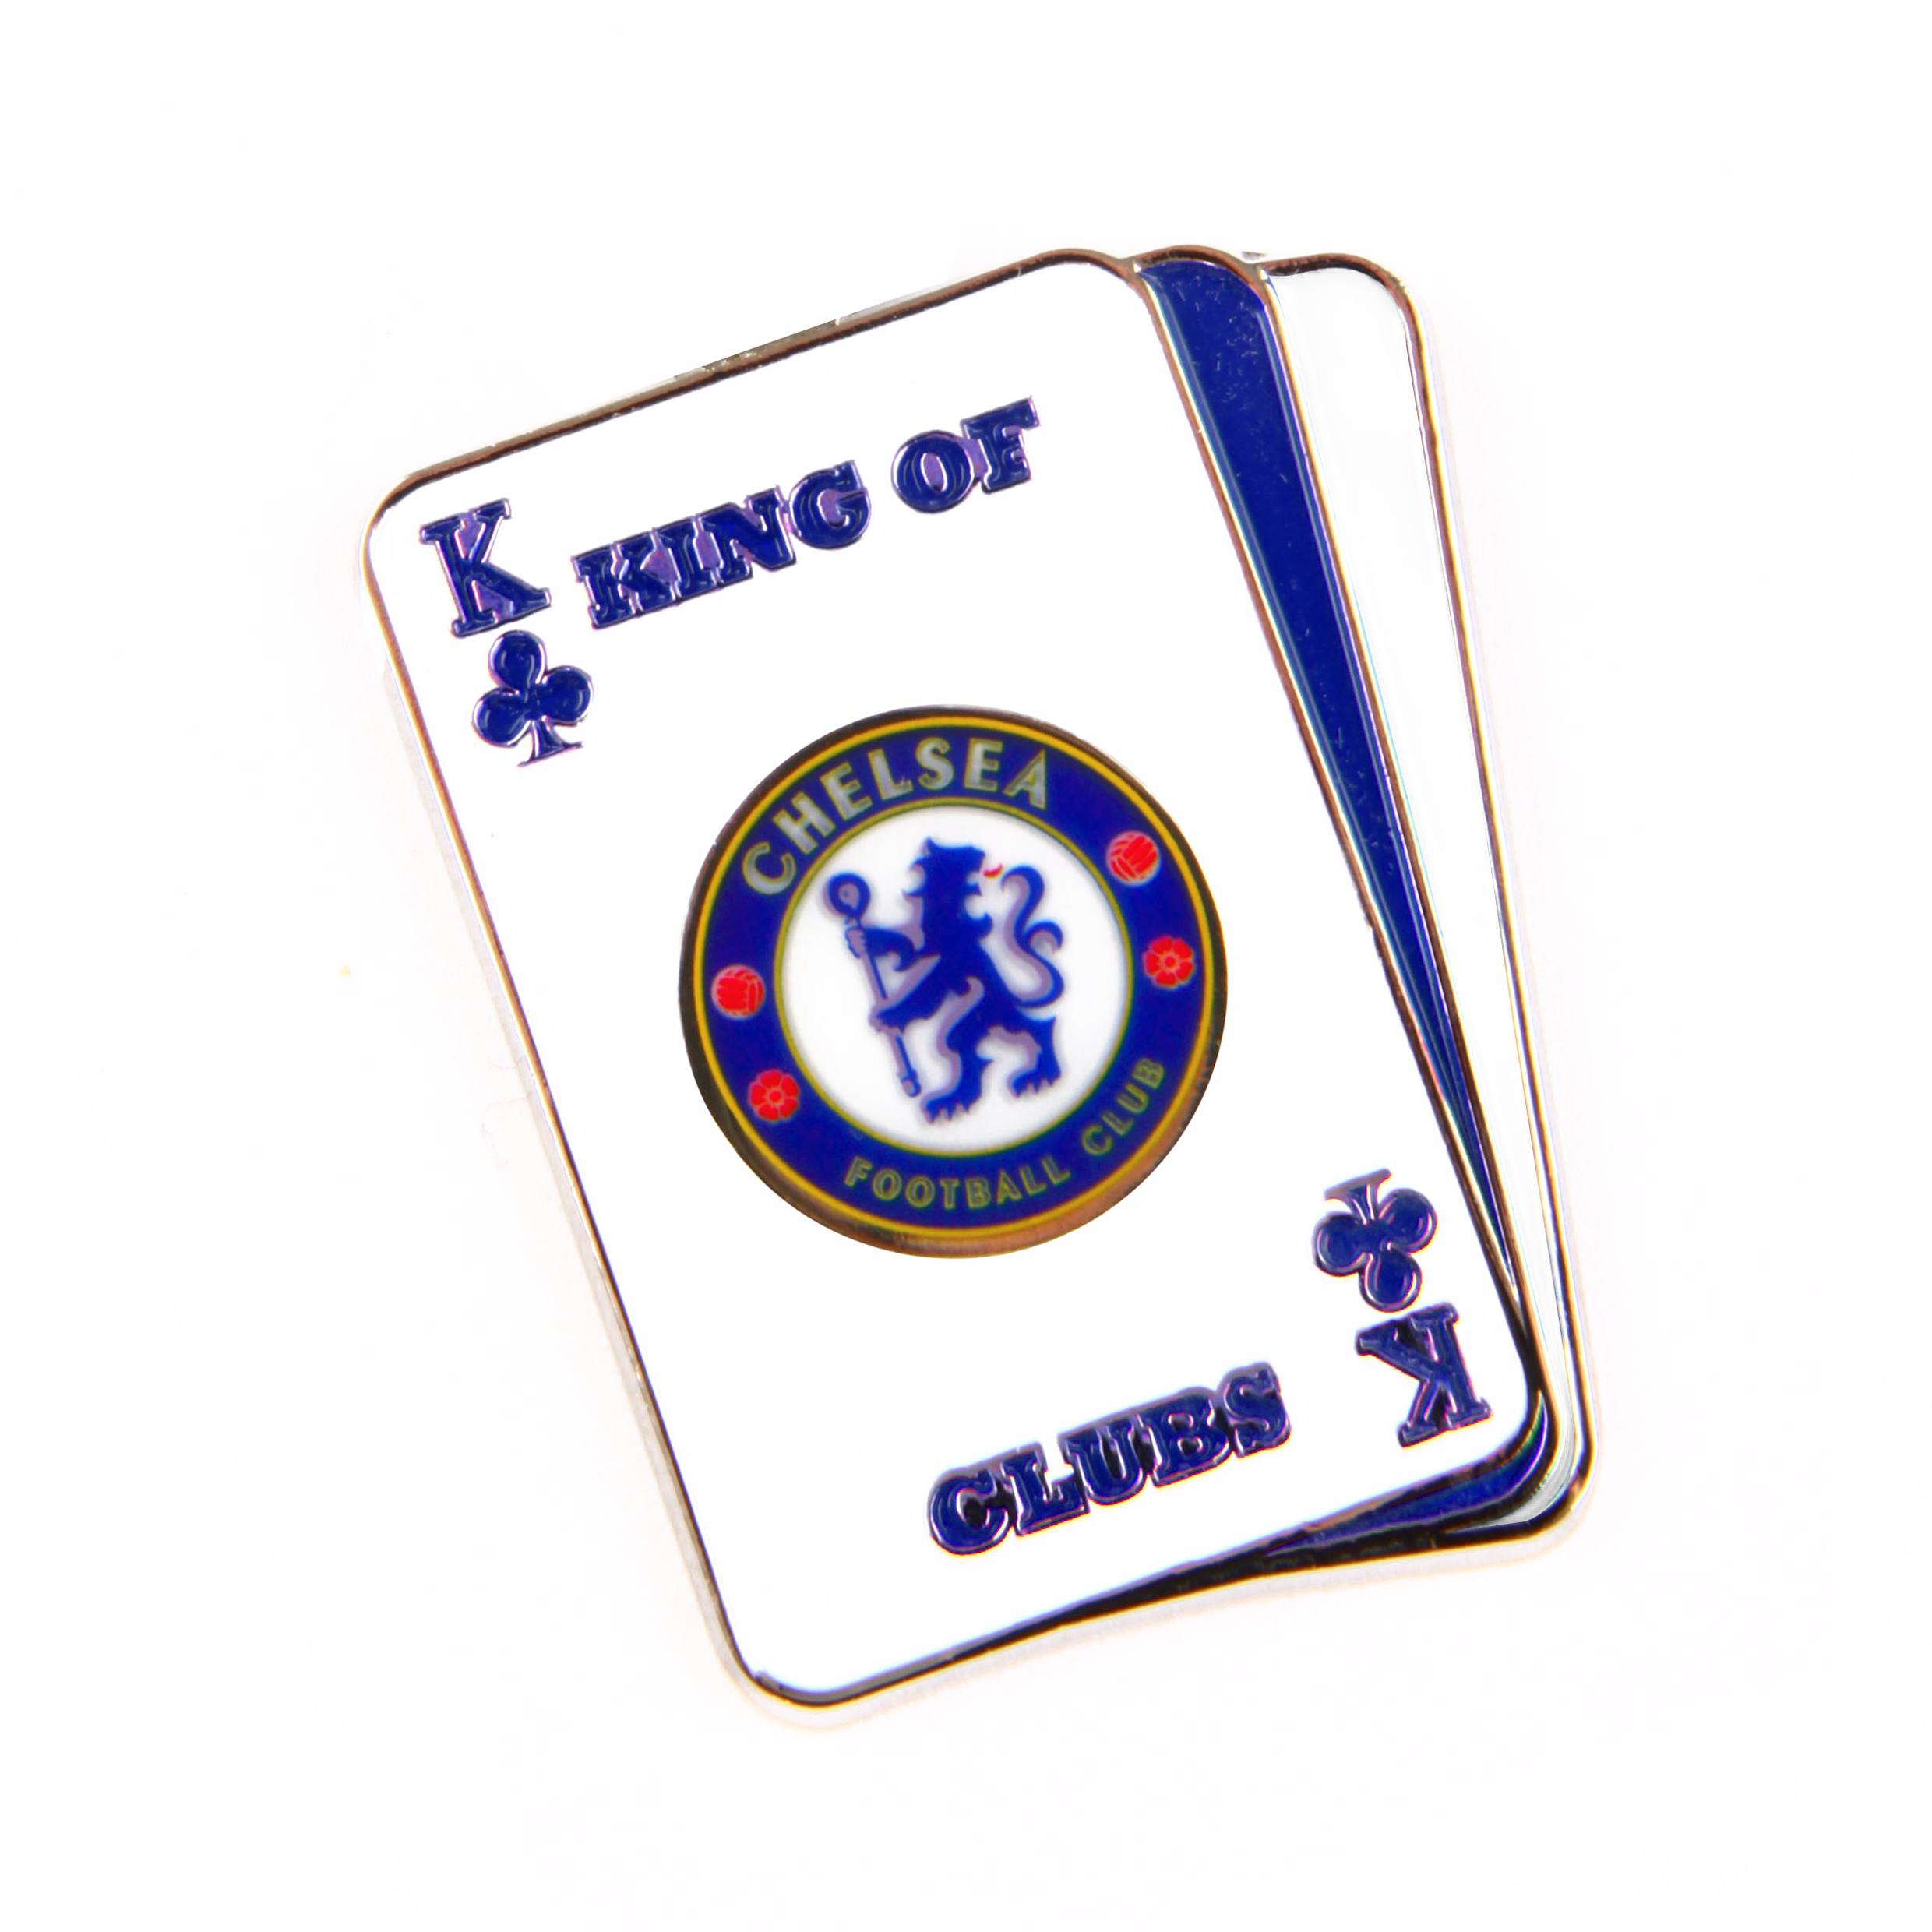 Chelsea King of Clubs Playing Card Badge